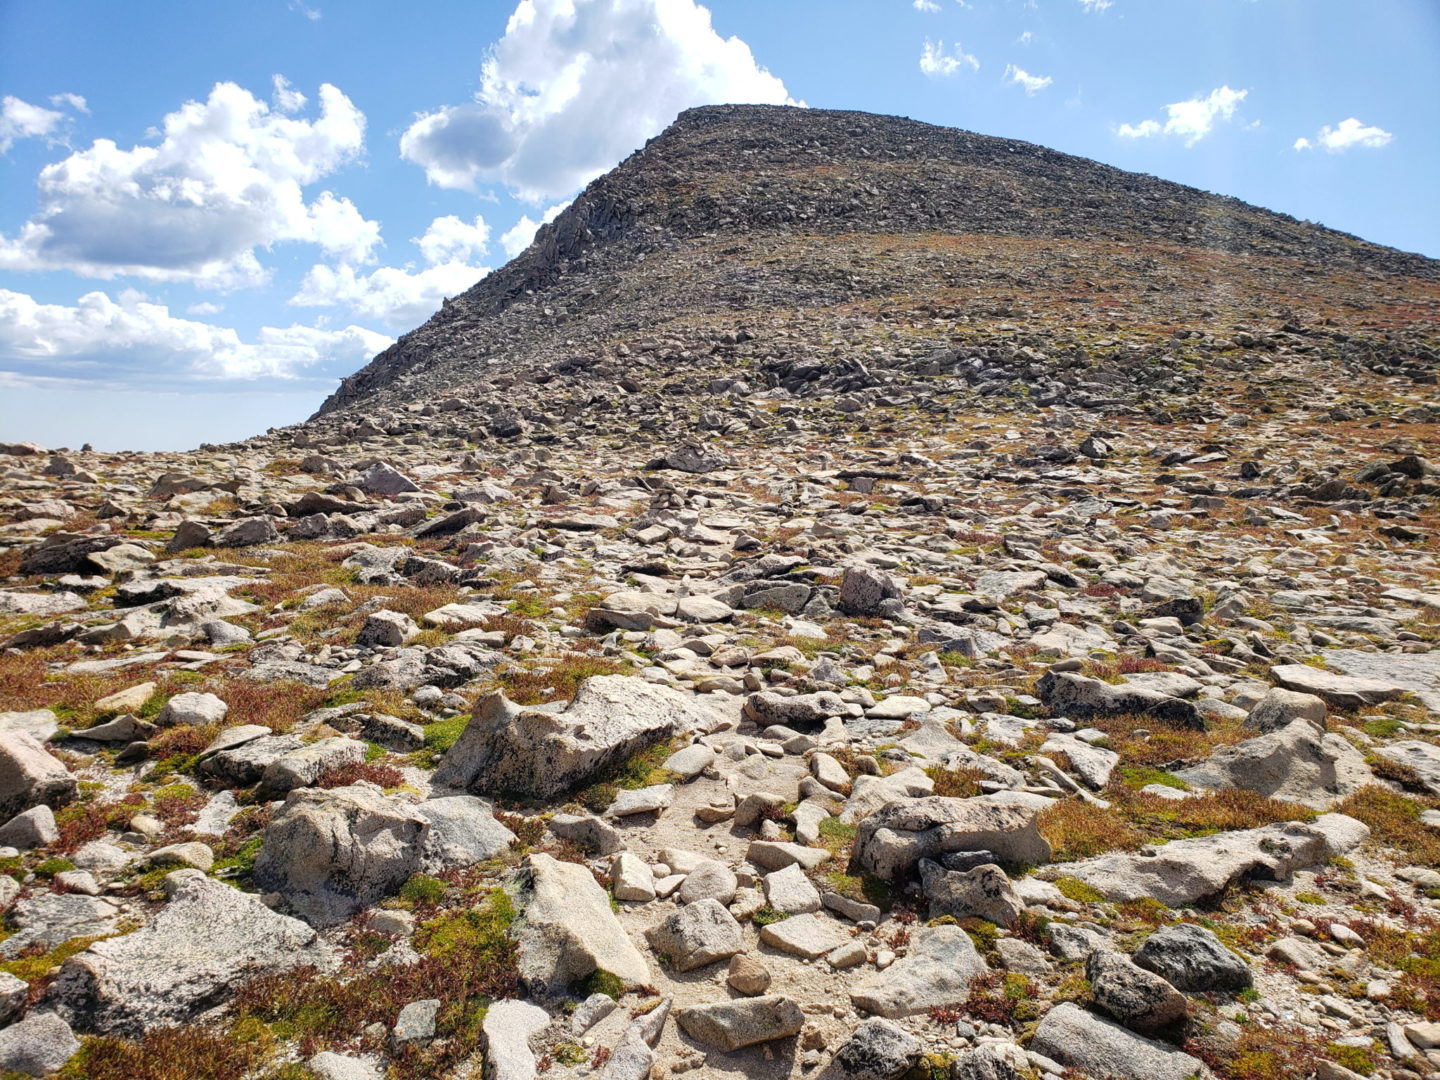 Hallett Peak summit (12,713')